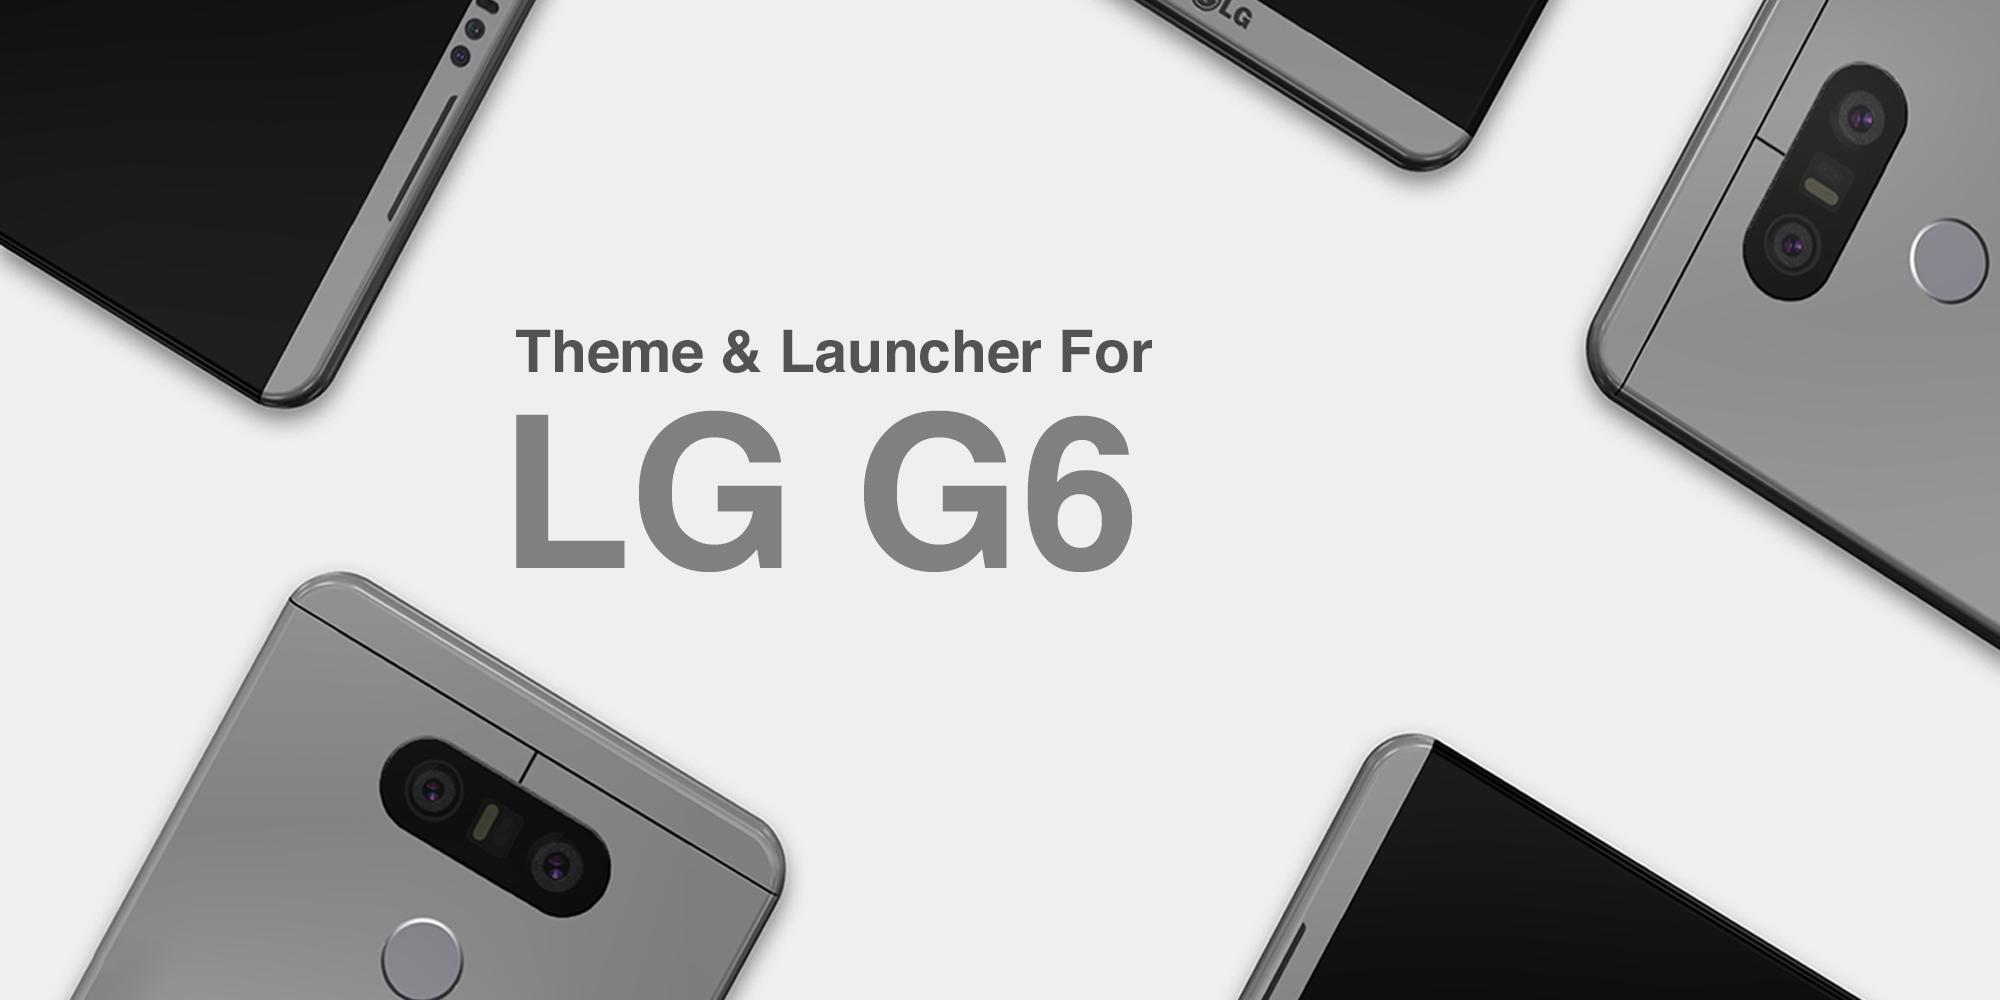 Theme For LG G6 - LG G6 Theme & Launcher for Android - APK